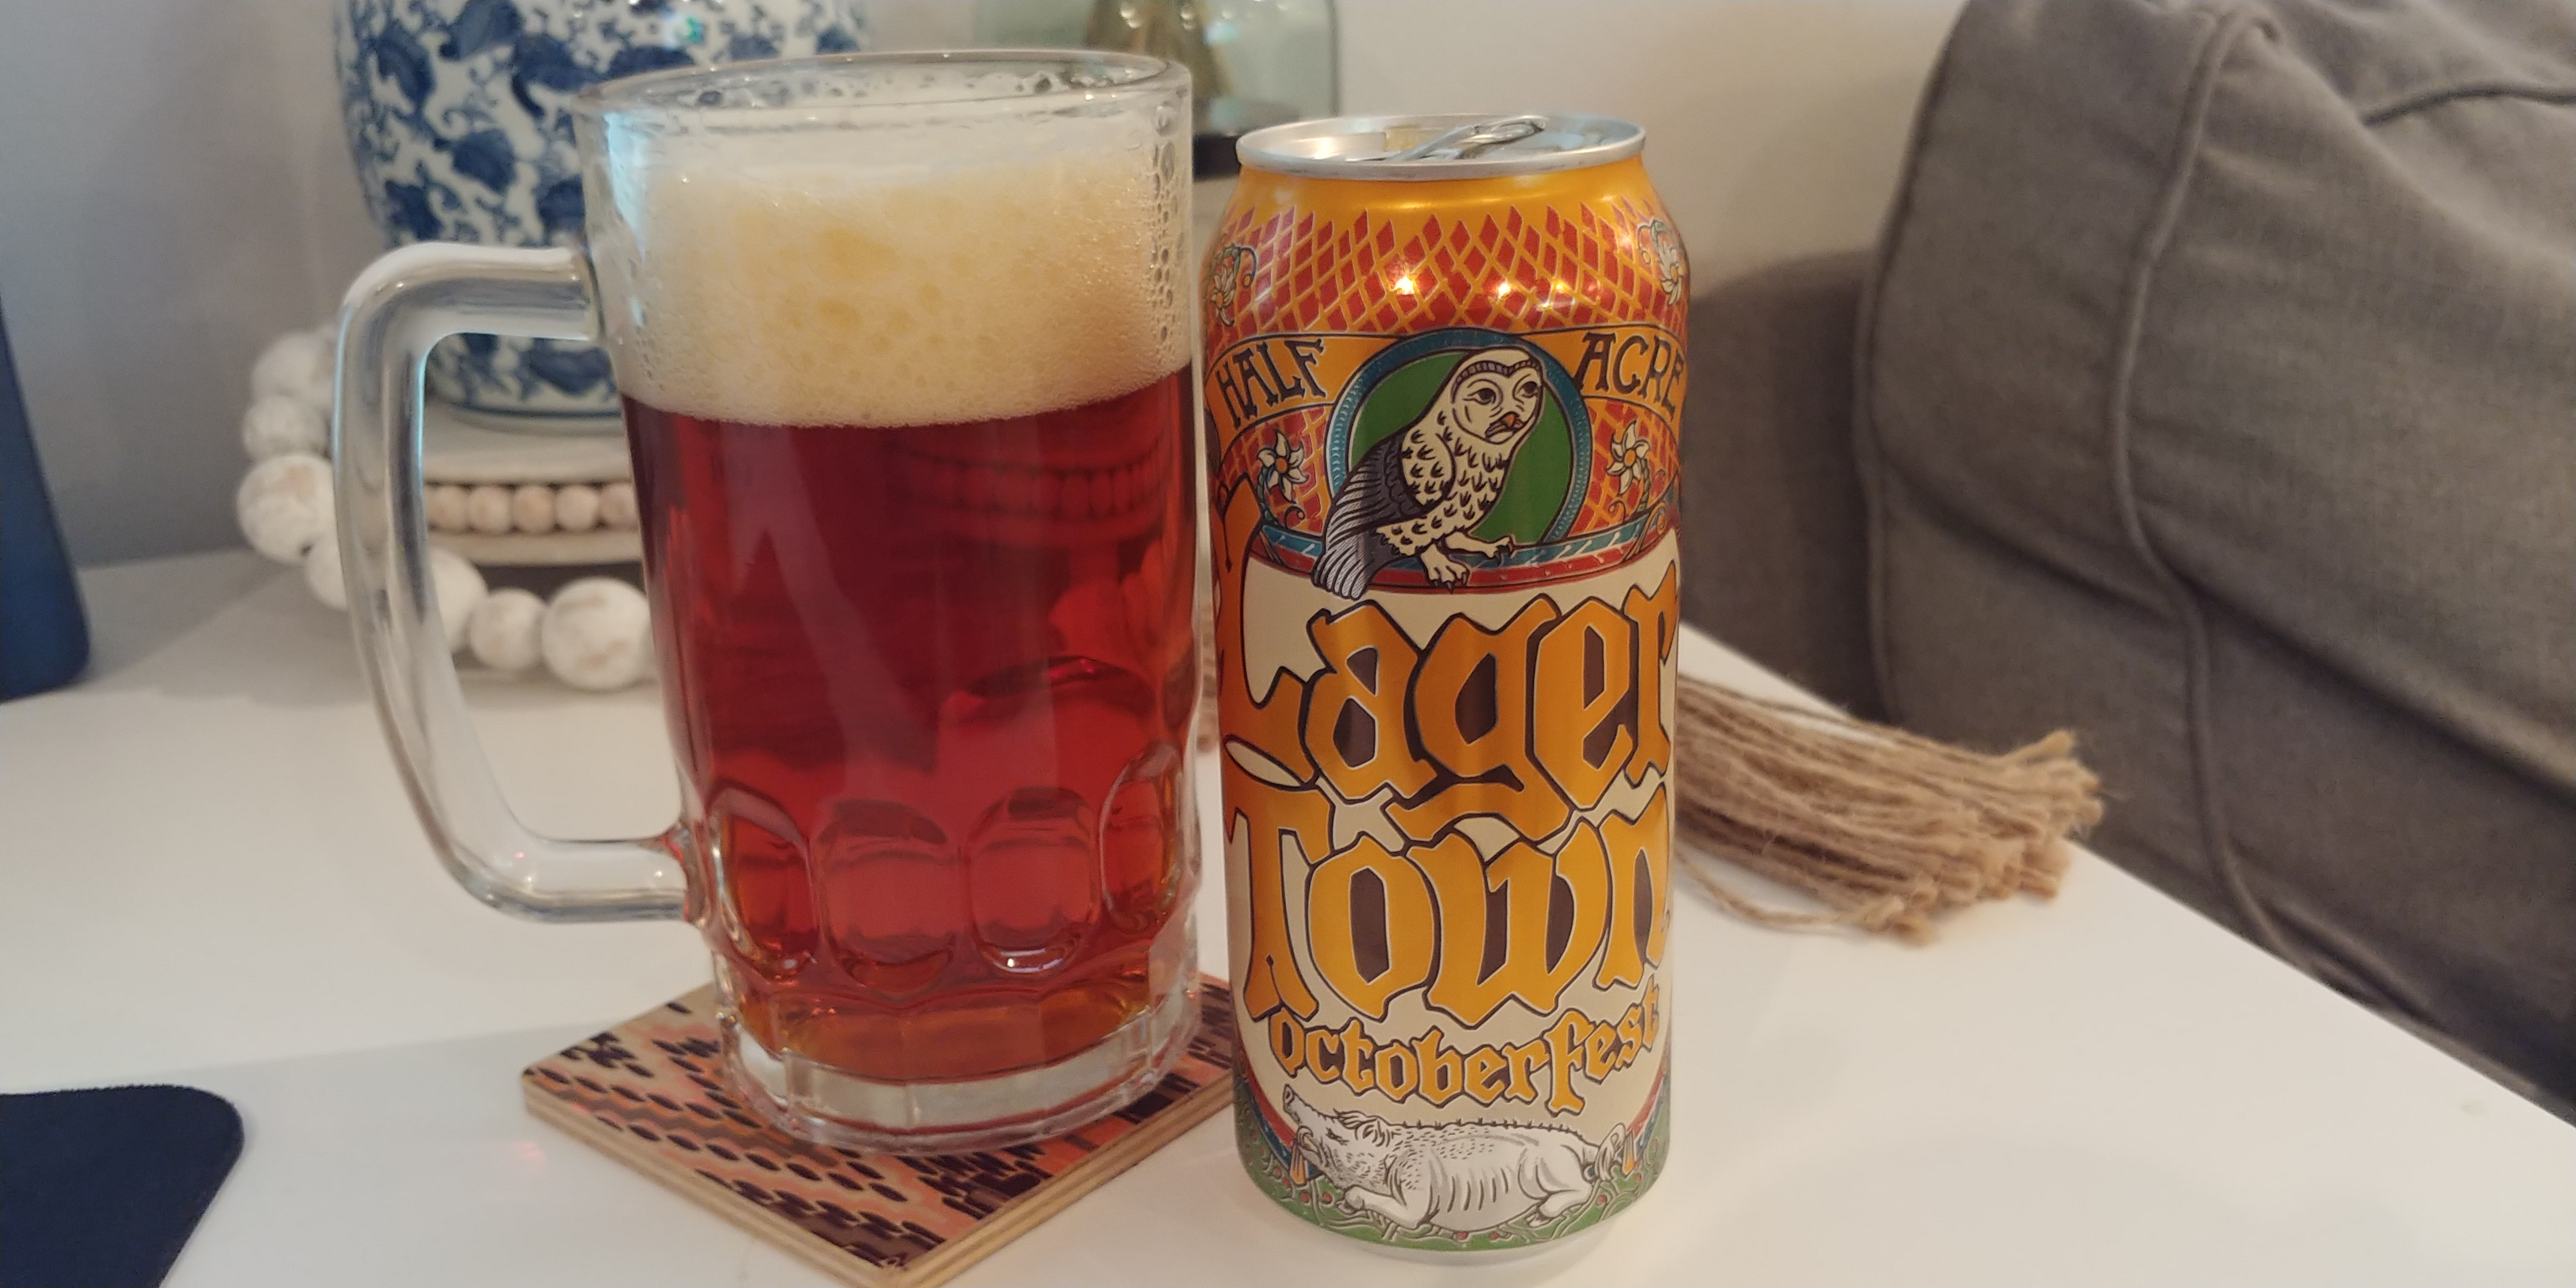 Half Acre Lager Town Beer